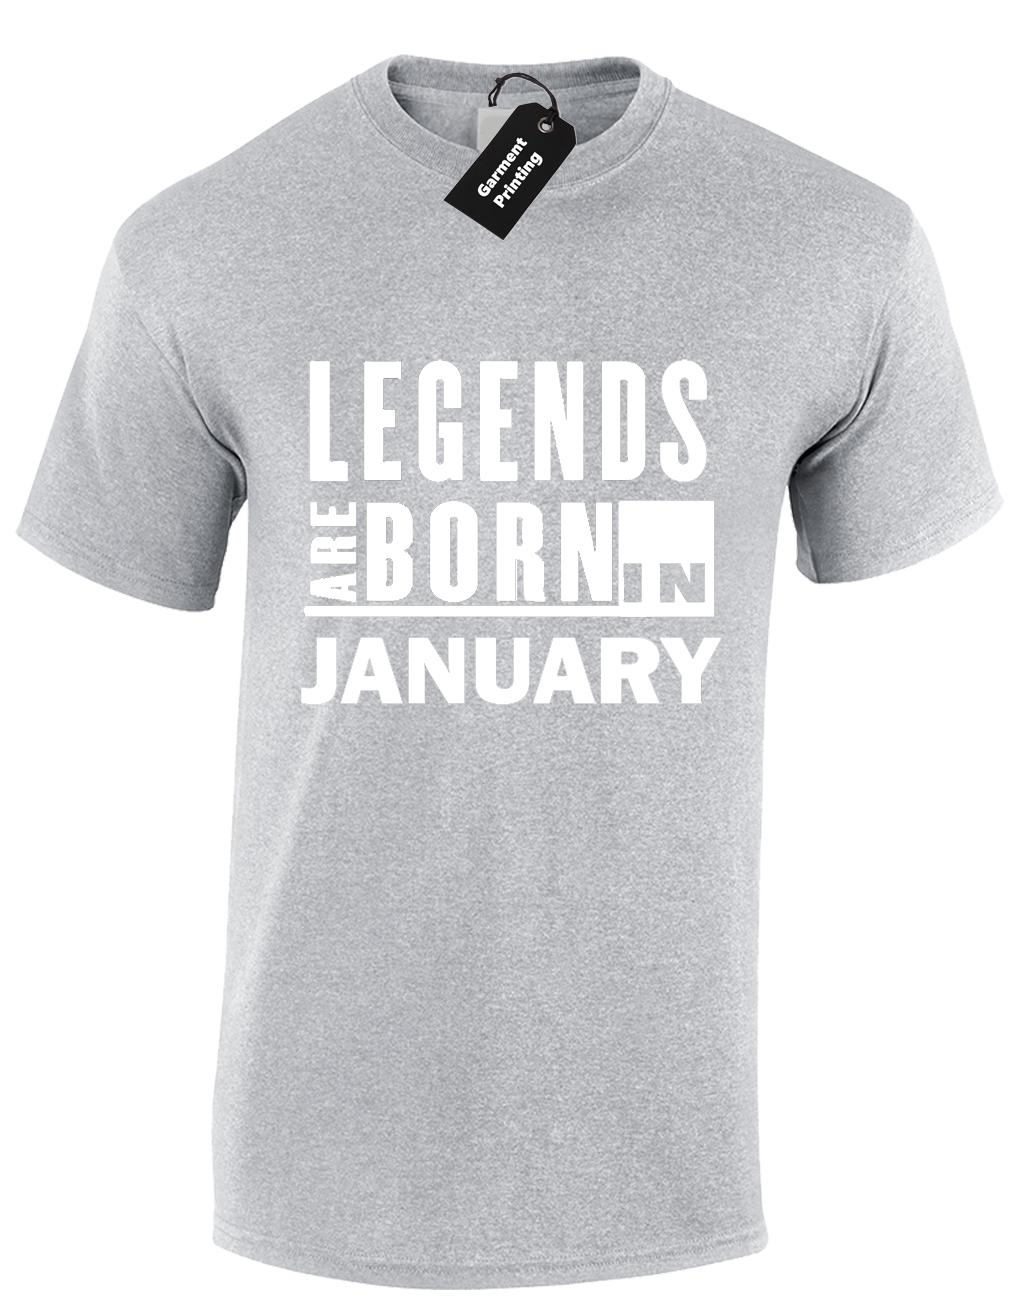 ad14ac5a9 LEGENDS ARE BORN IN JANUARY MENS T SHIRT COOL FUNNY BIRTHDAY GIFT PRESENT  IDEA Funny Unisex Casual Gift Rude Tshirts Offensive Tee Shirts From  Superstartees ...